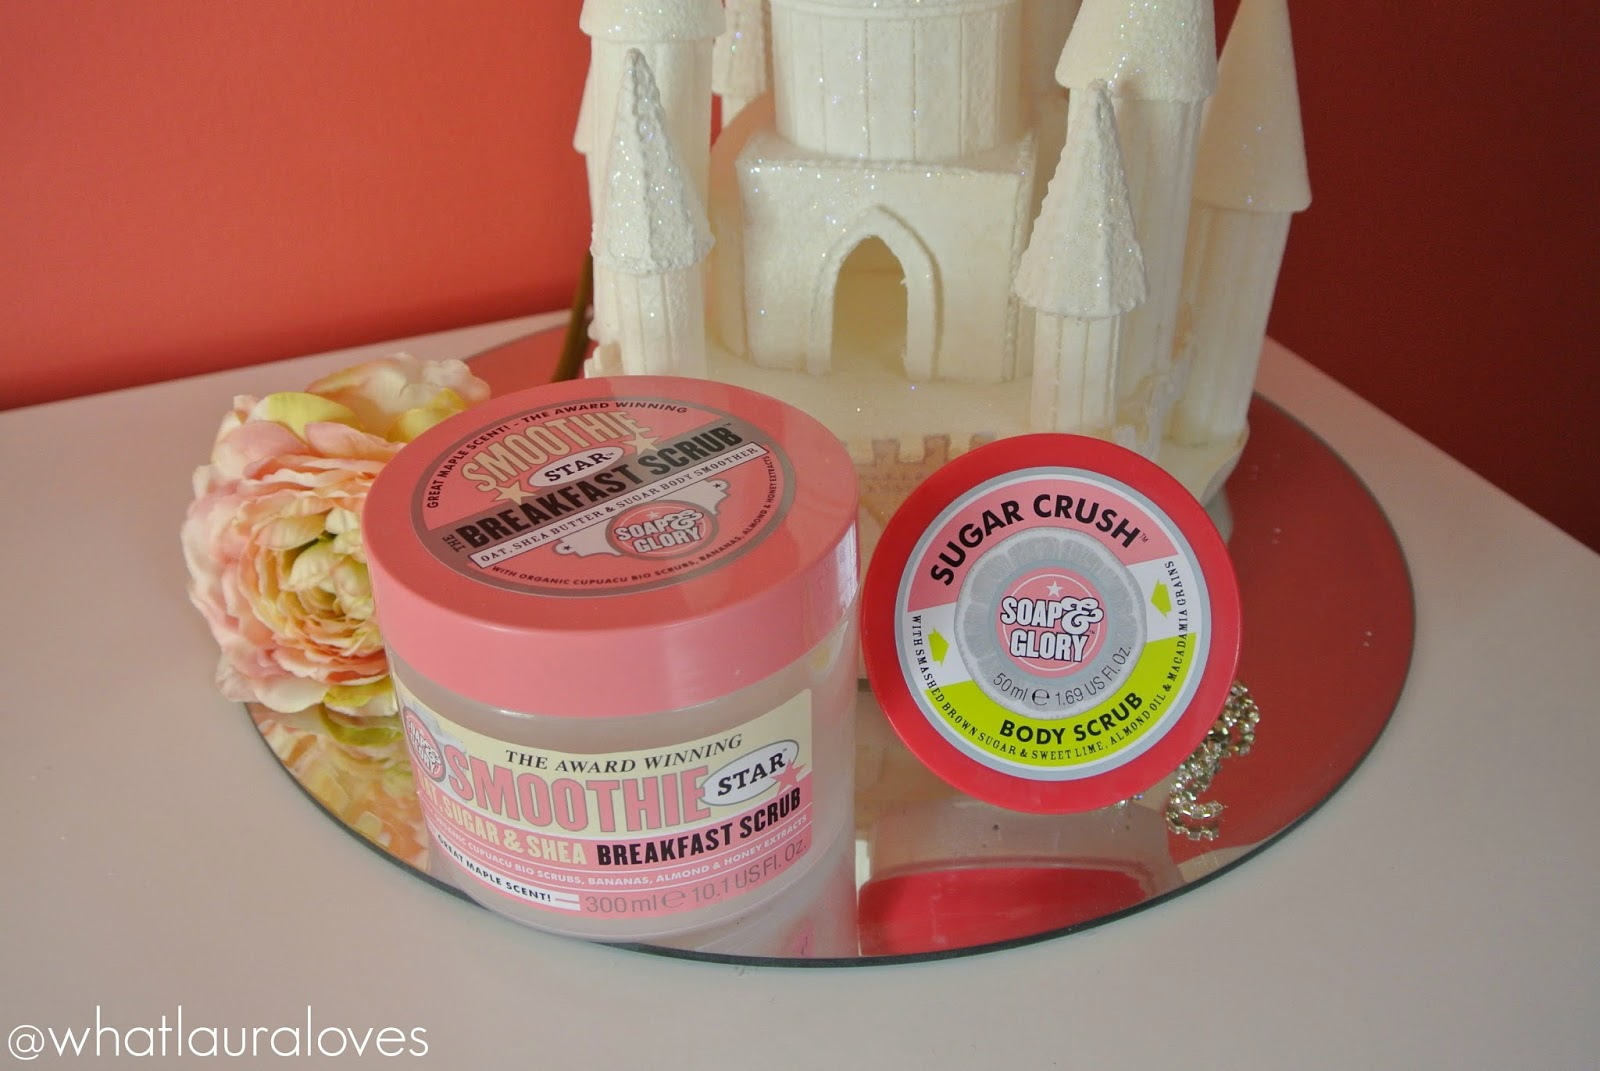 Soap and Glory Body Scrubs